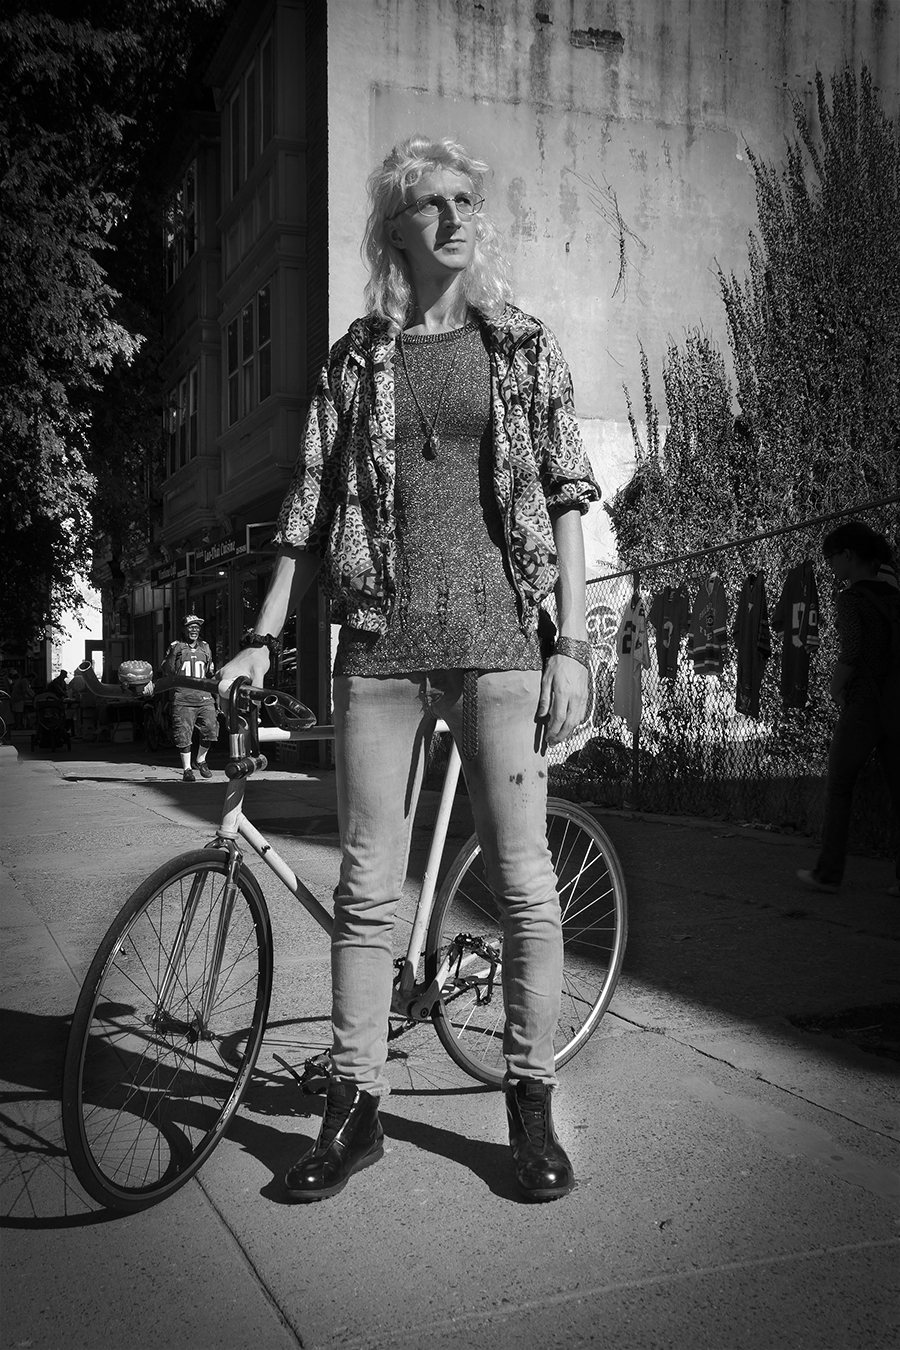 Jingwen_Felix_Qiang_Photography_Bicycle_Guy_West_Philly_Street_Baltimore